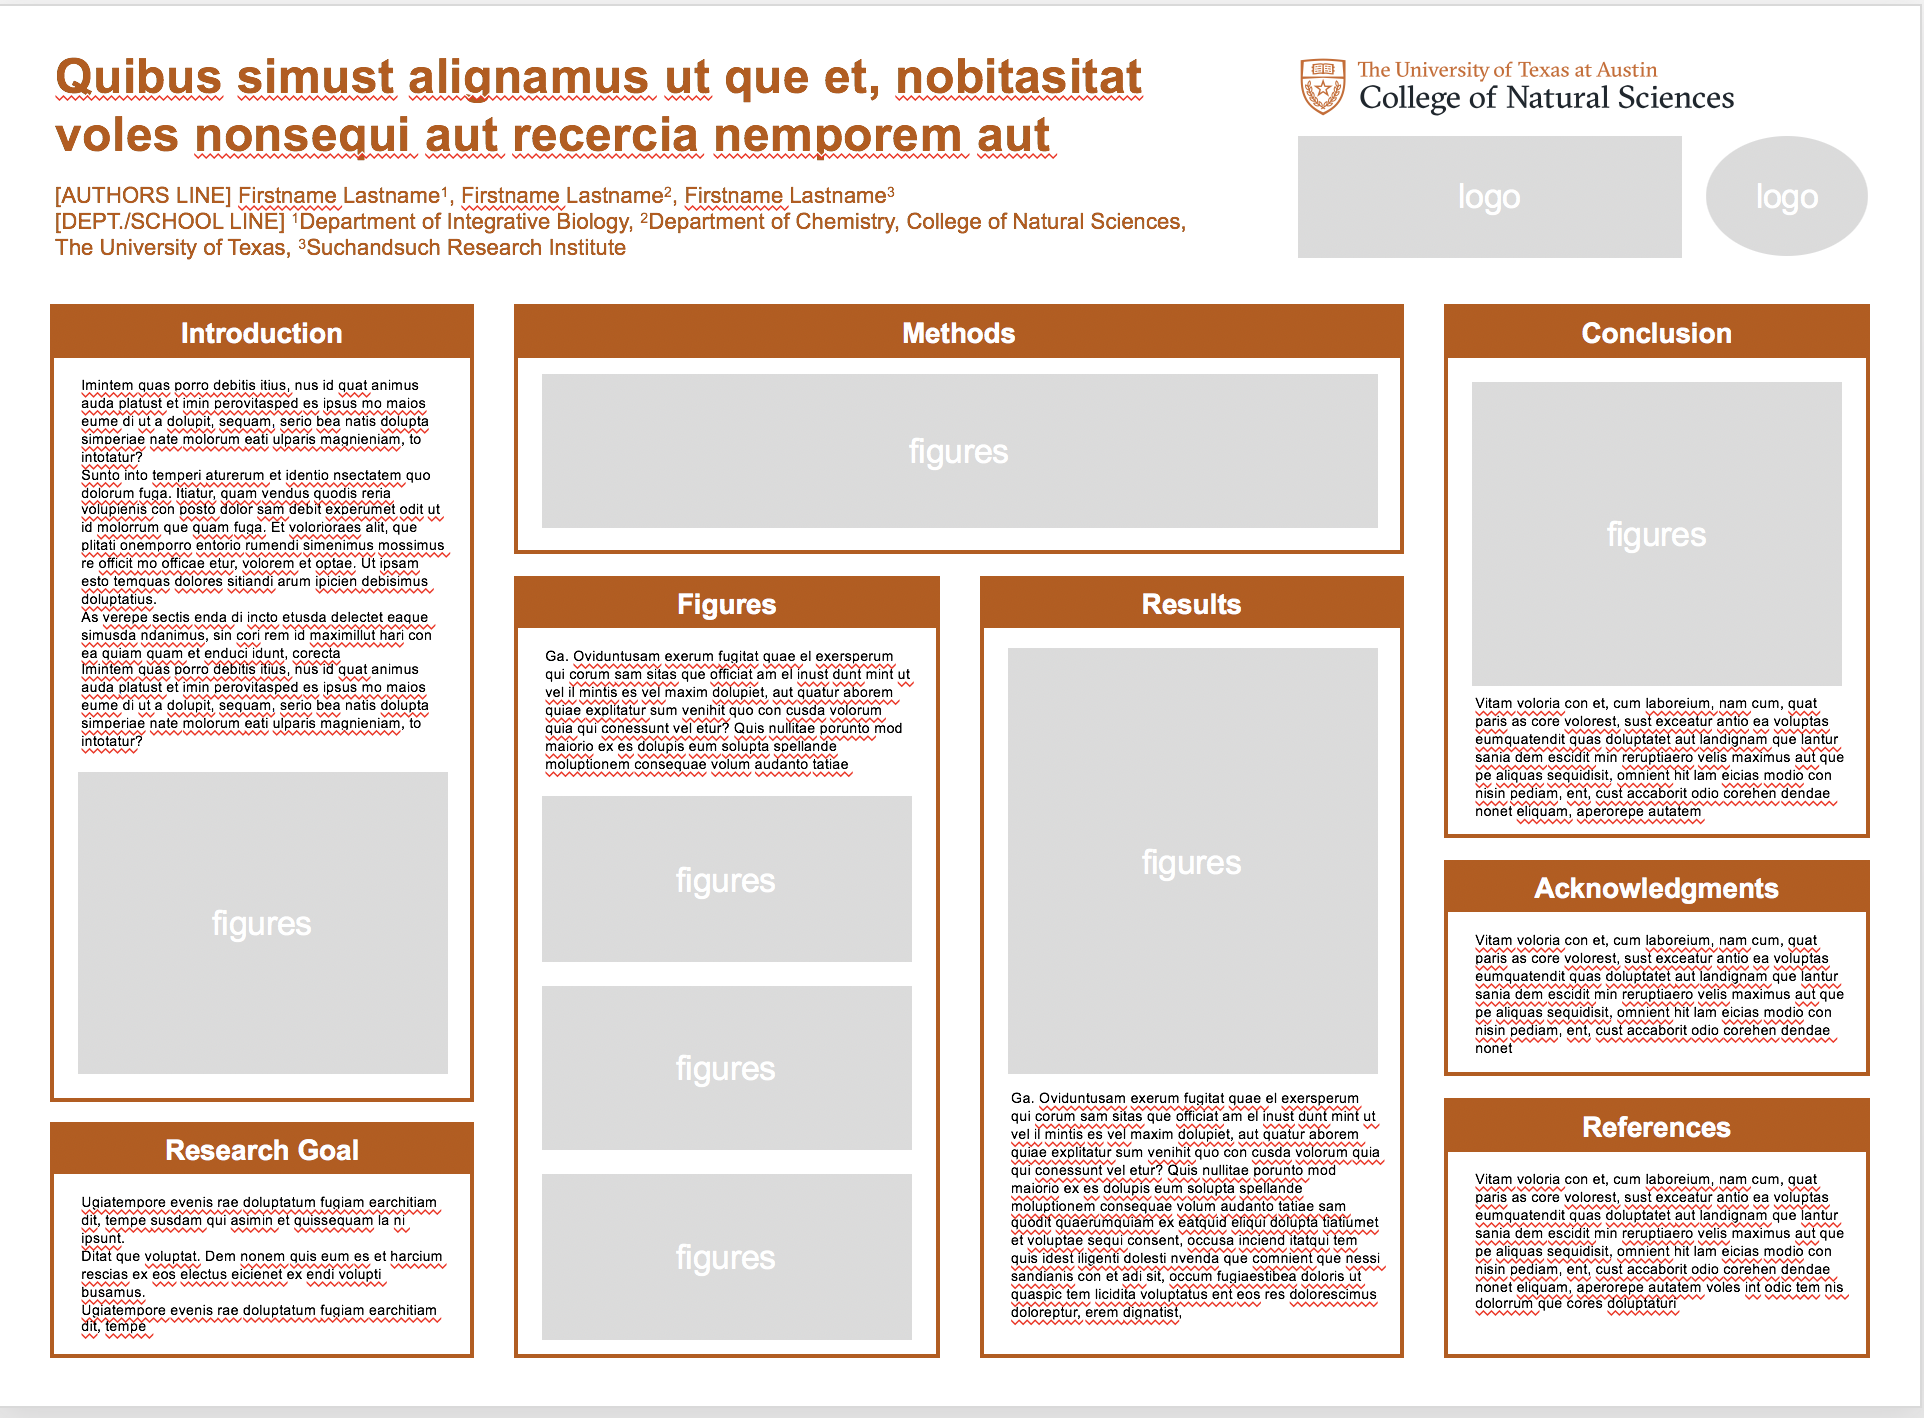 poster example